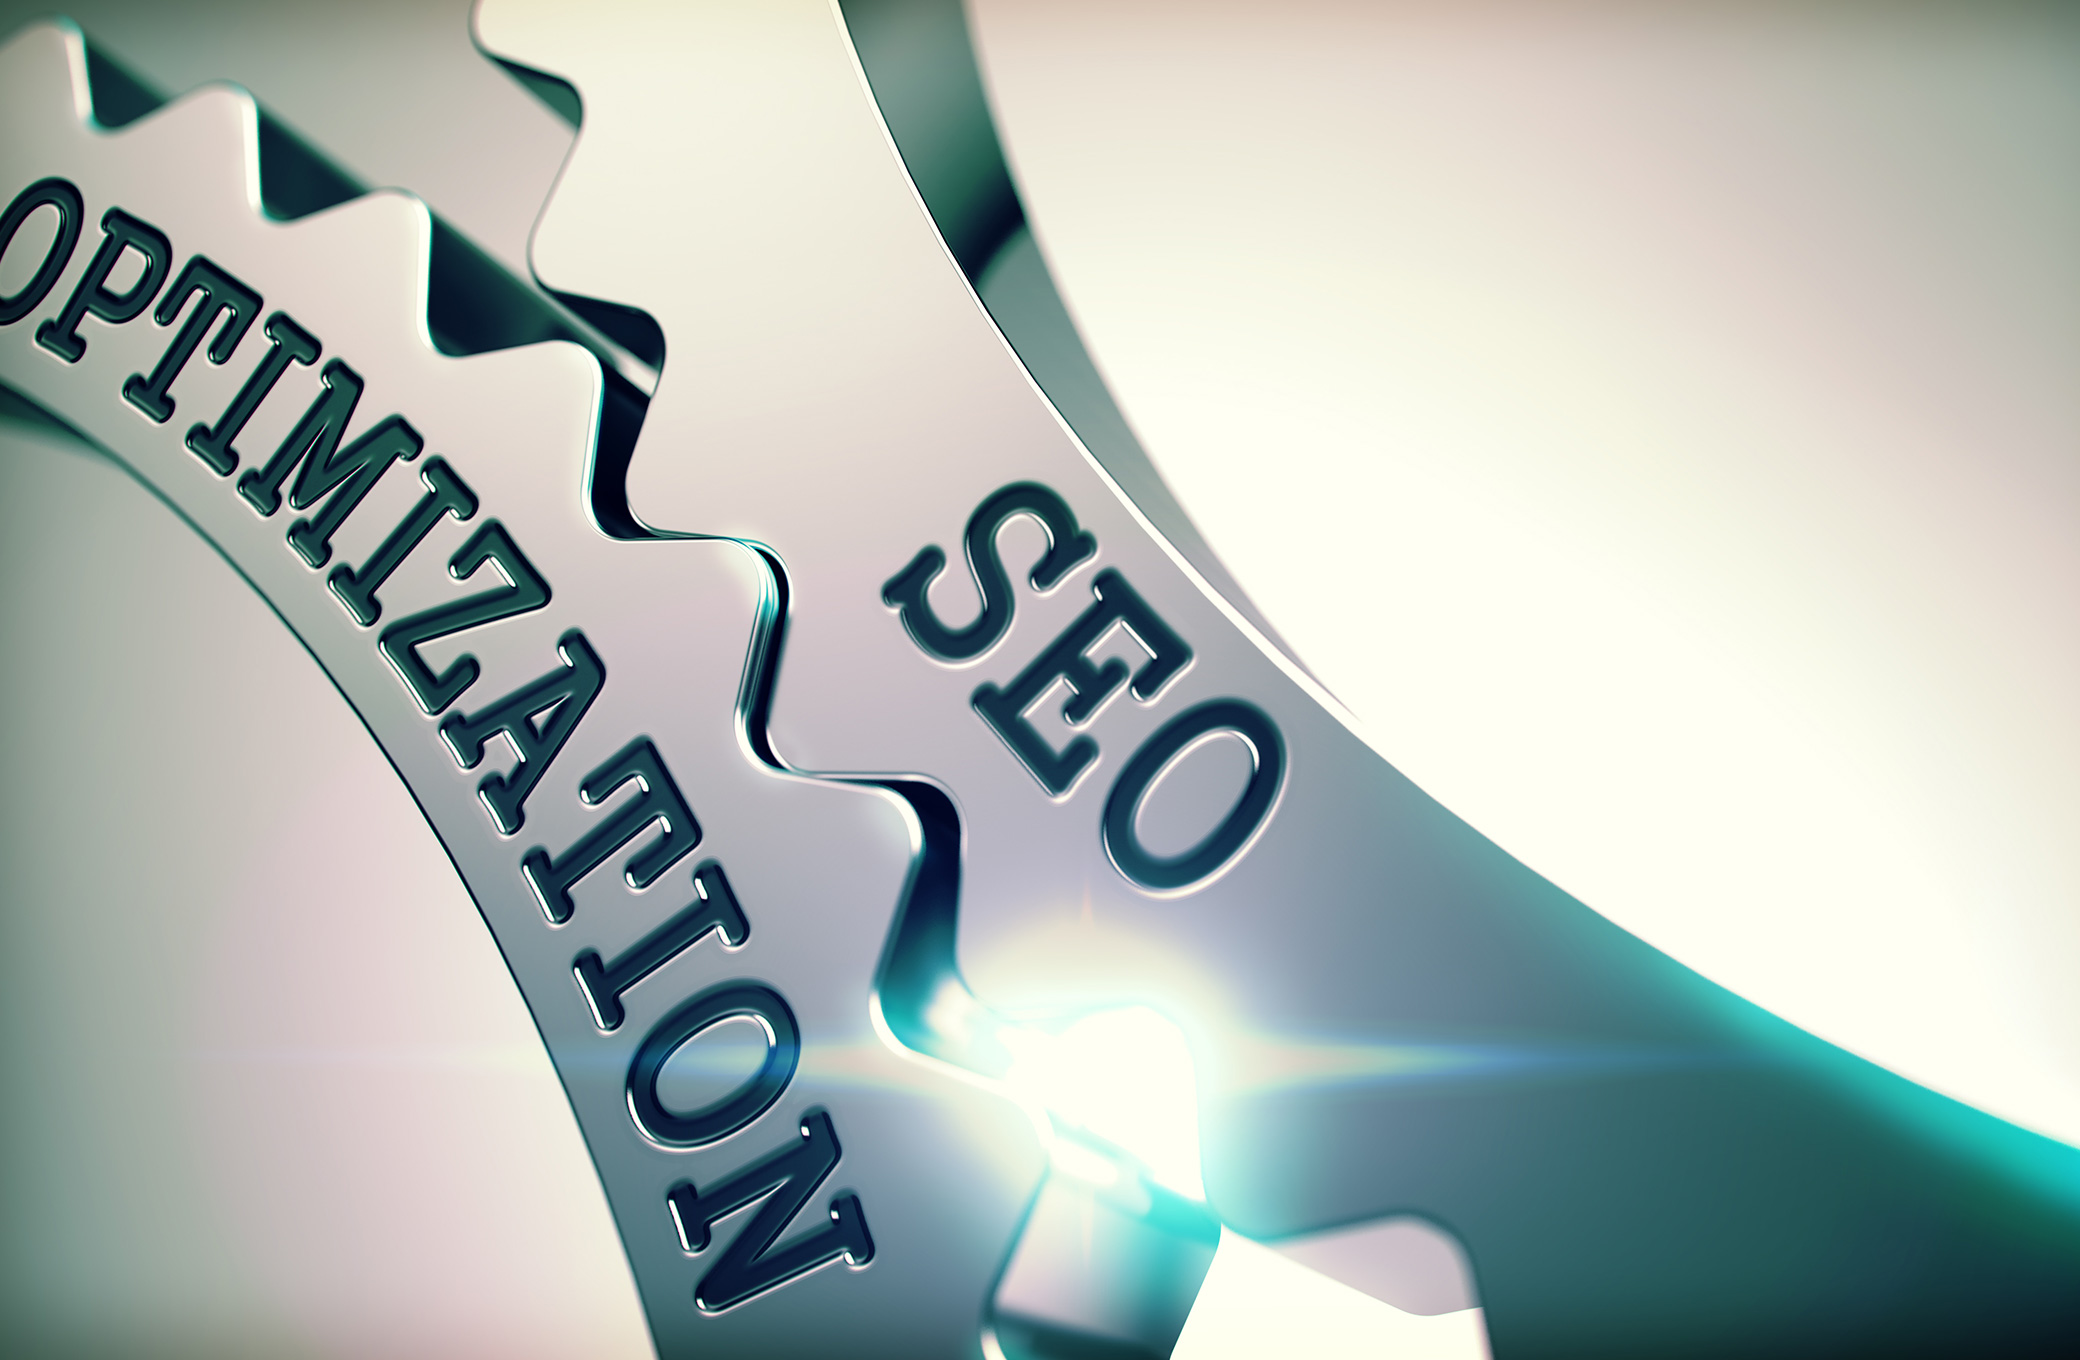 seo-optimization 이미지